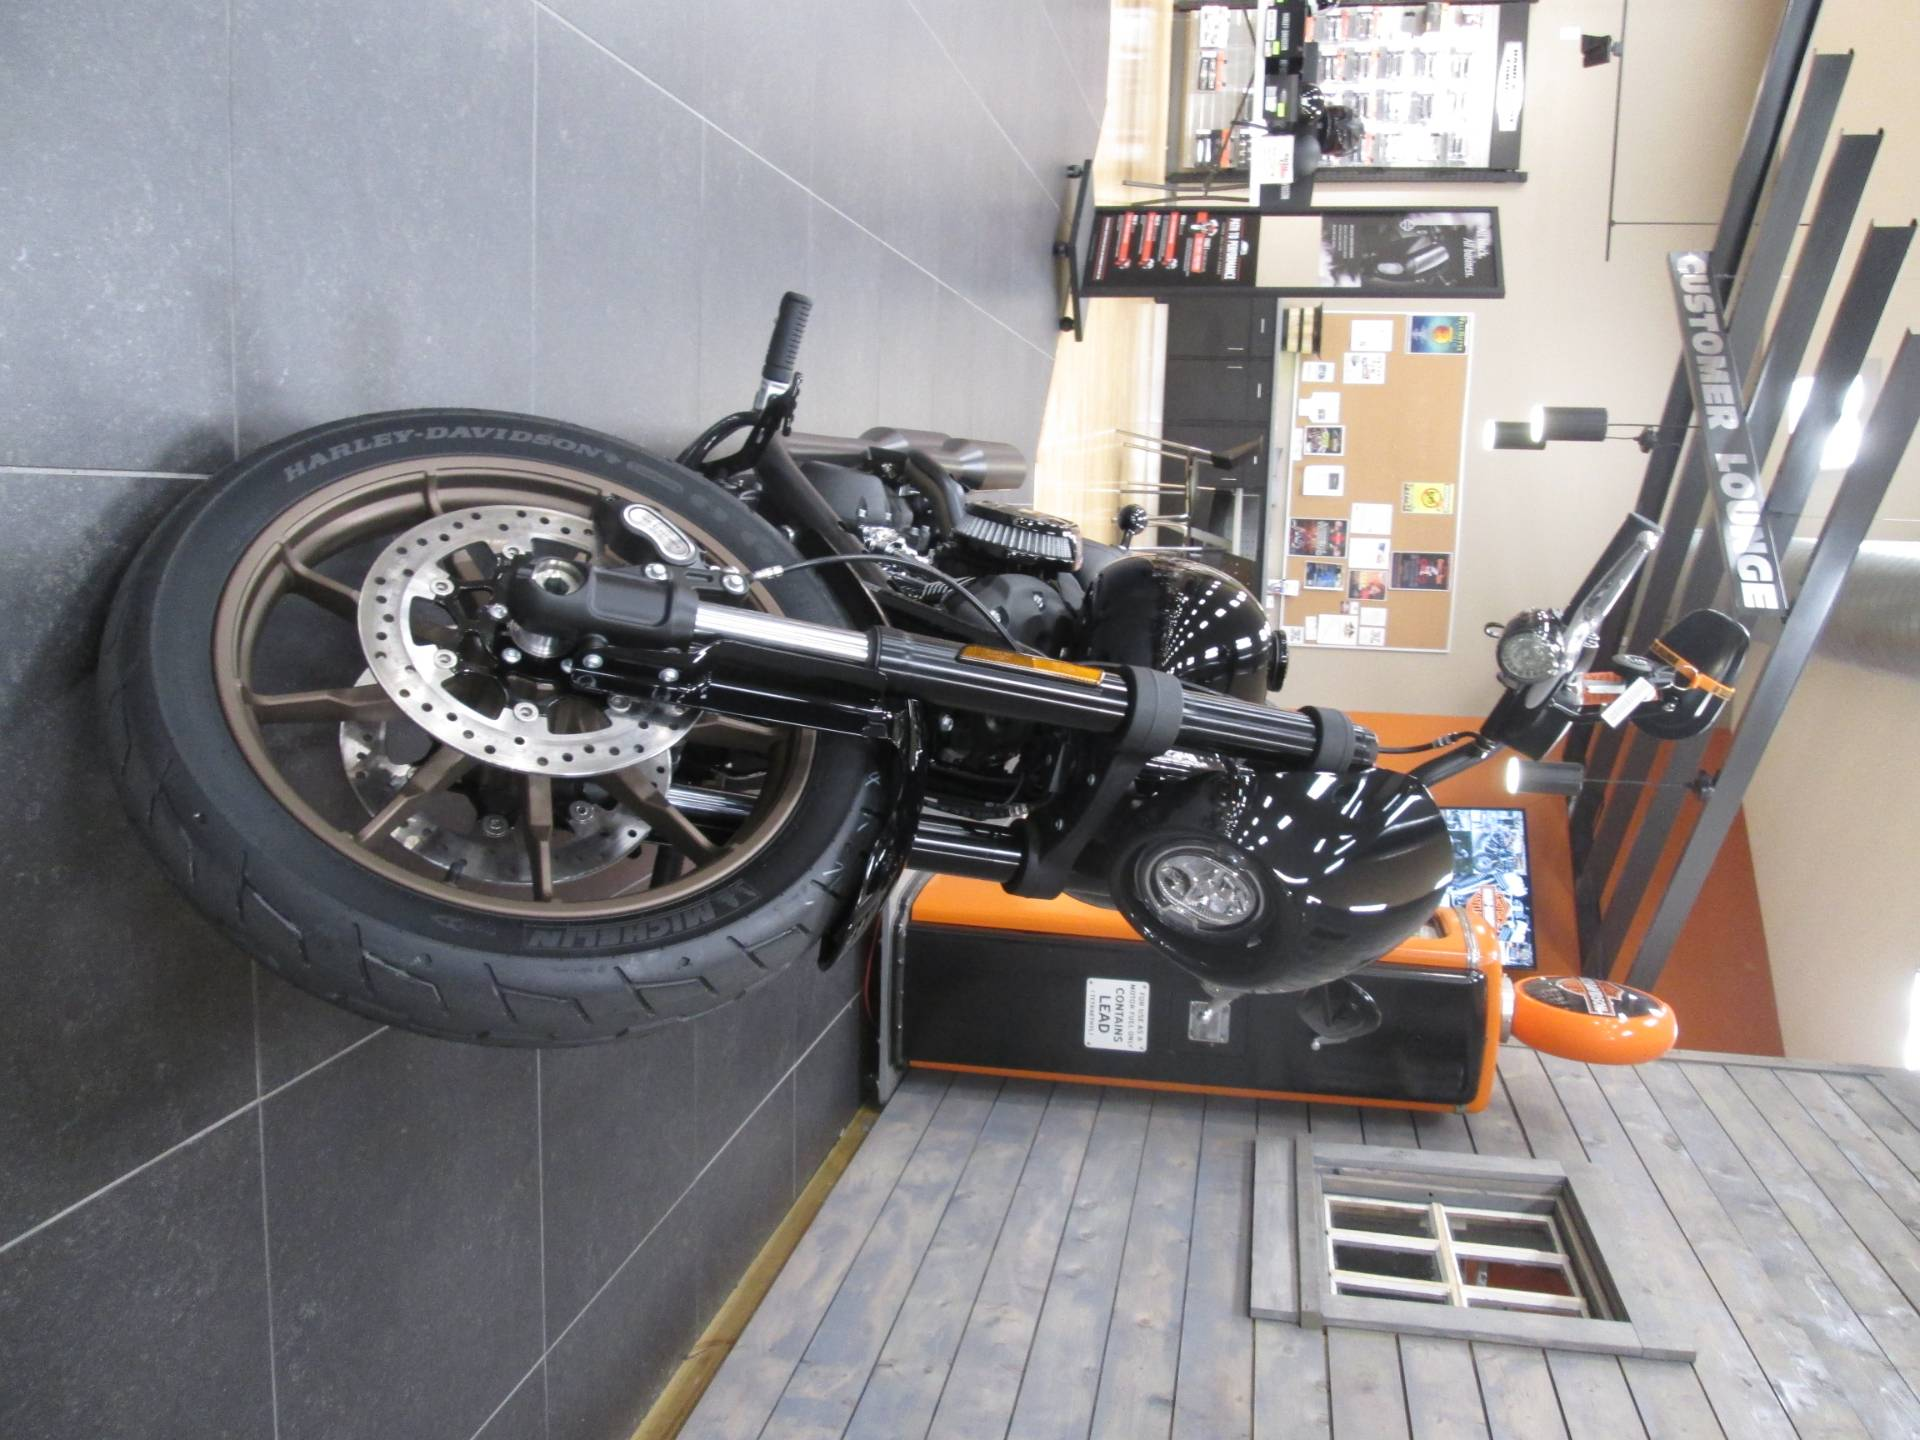 2020 Harley-Davidson Low Rider®S in Lafayette, Indiana - Photo 6